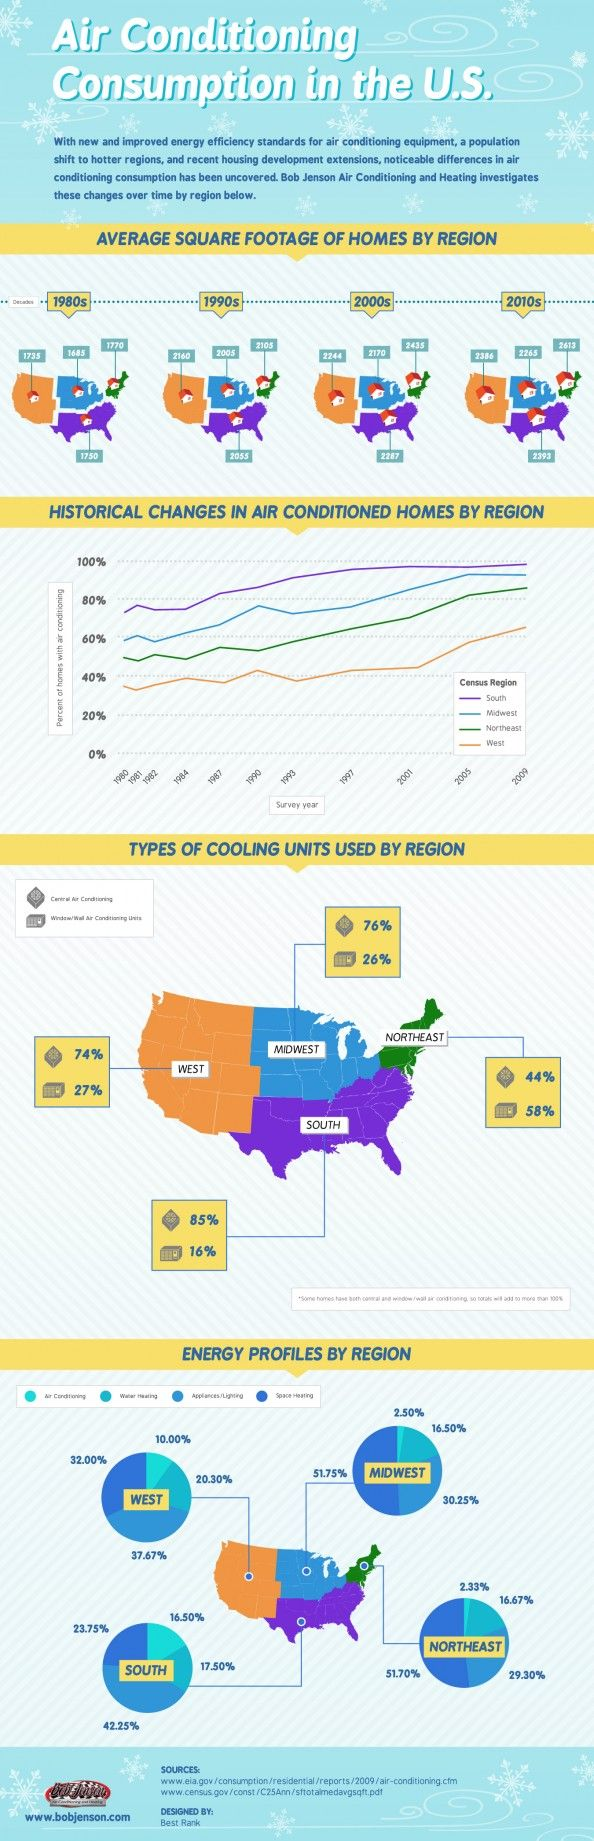 Air Conditioning Consumption in the US